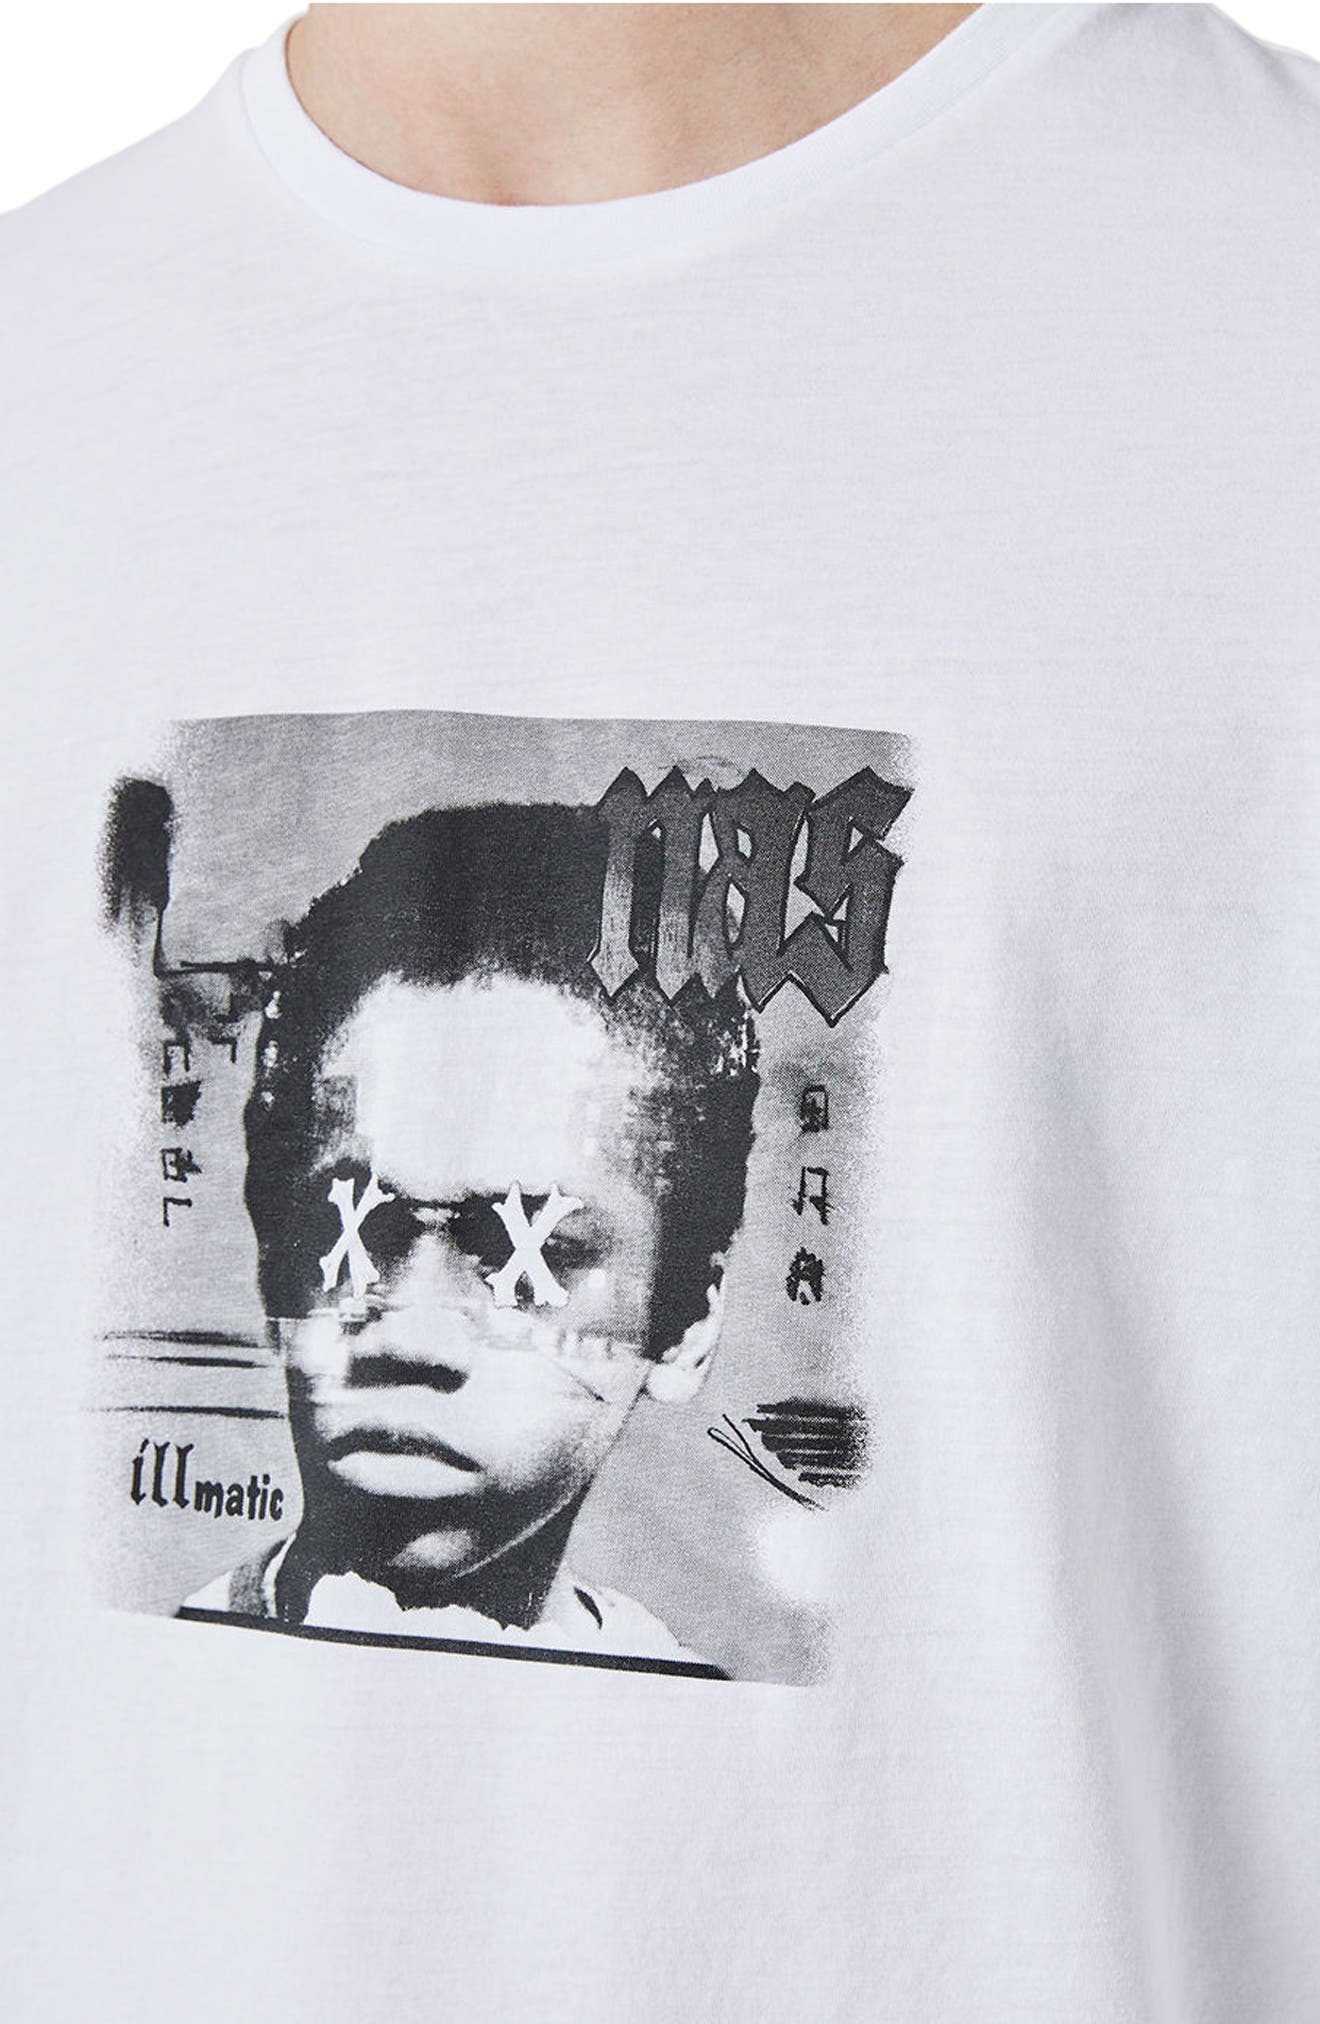 Nas Illmatic Long Sleeve Graphic T-Shirt,                             Alternate thumbnail 3, color,                             100